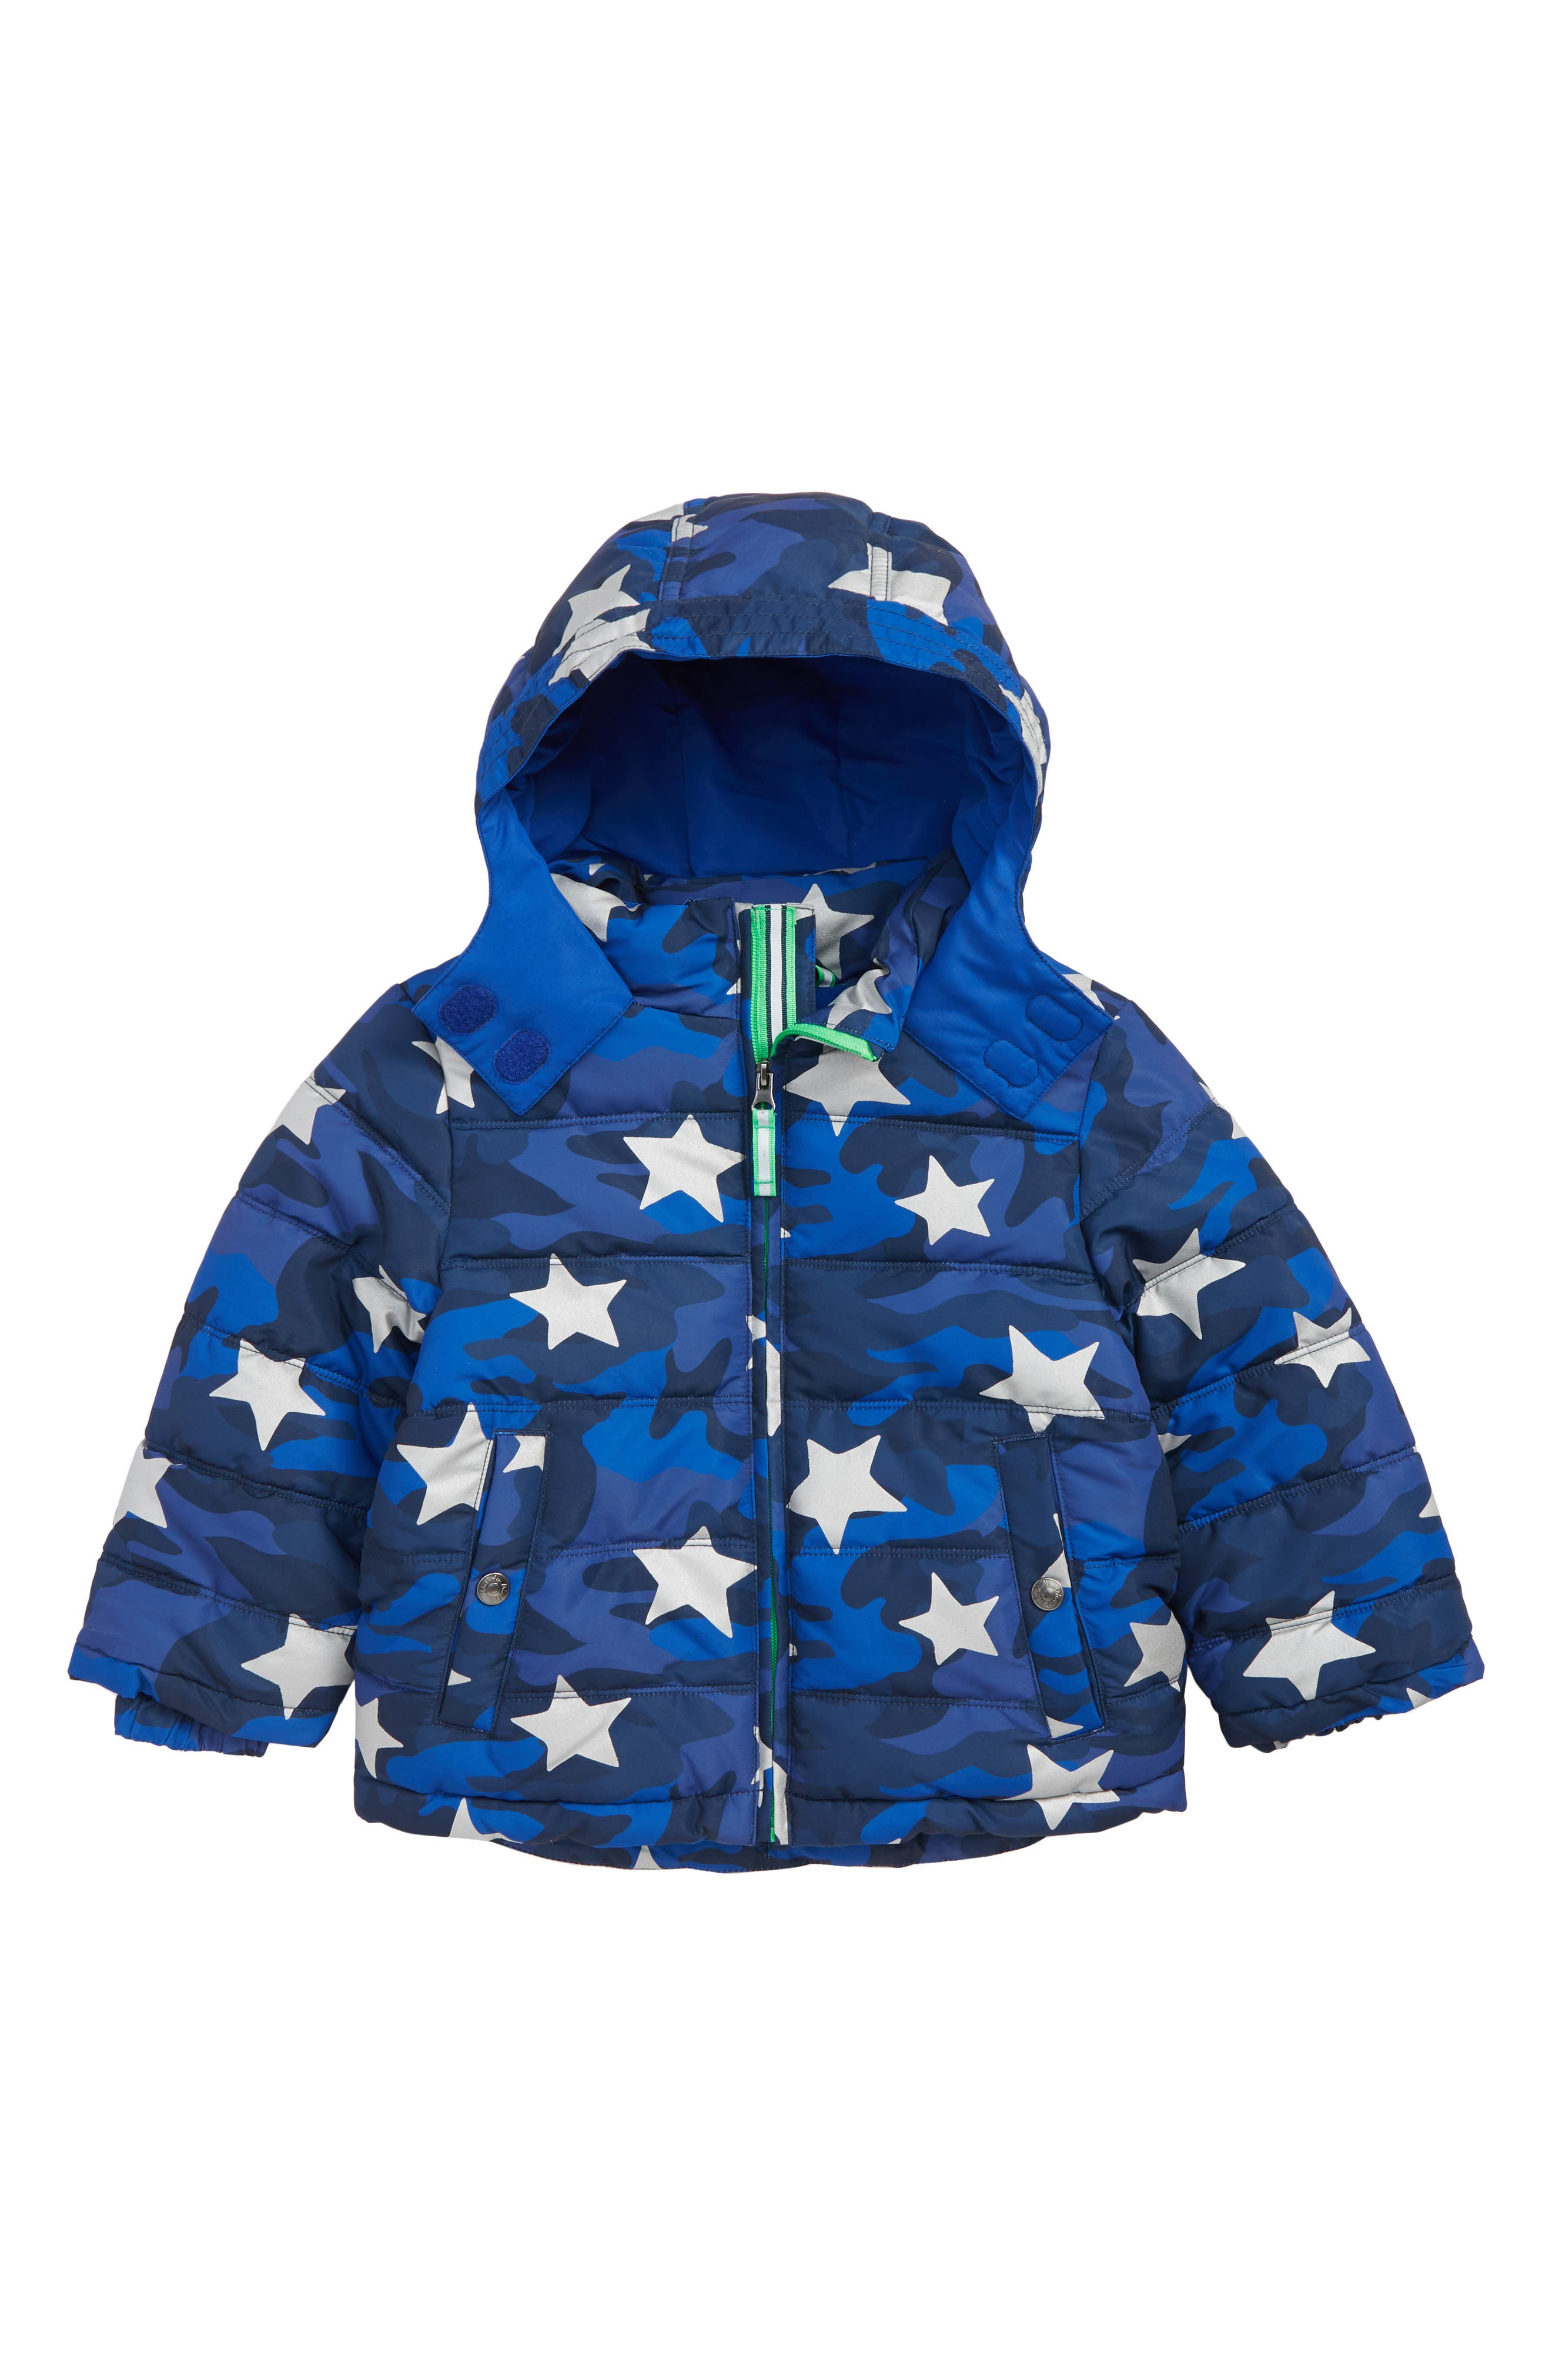 MINI BODEN High Visibility Water Resistant Quilted Coat, Main, color, 404